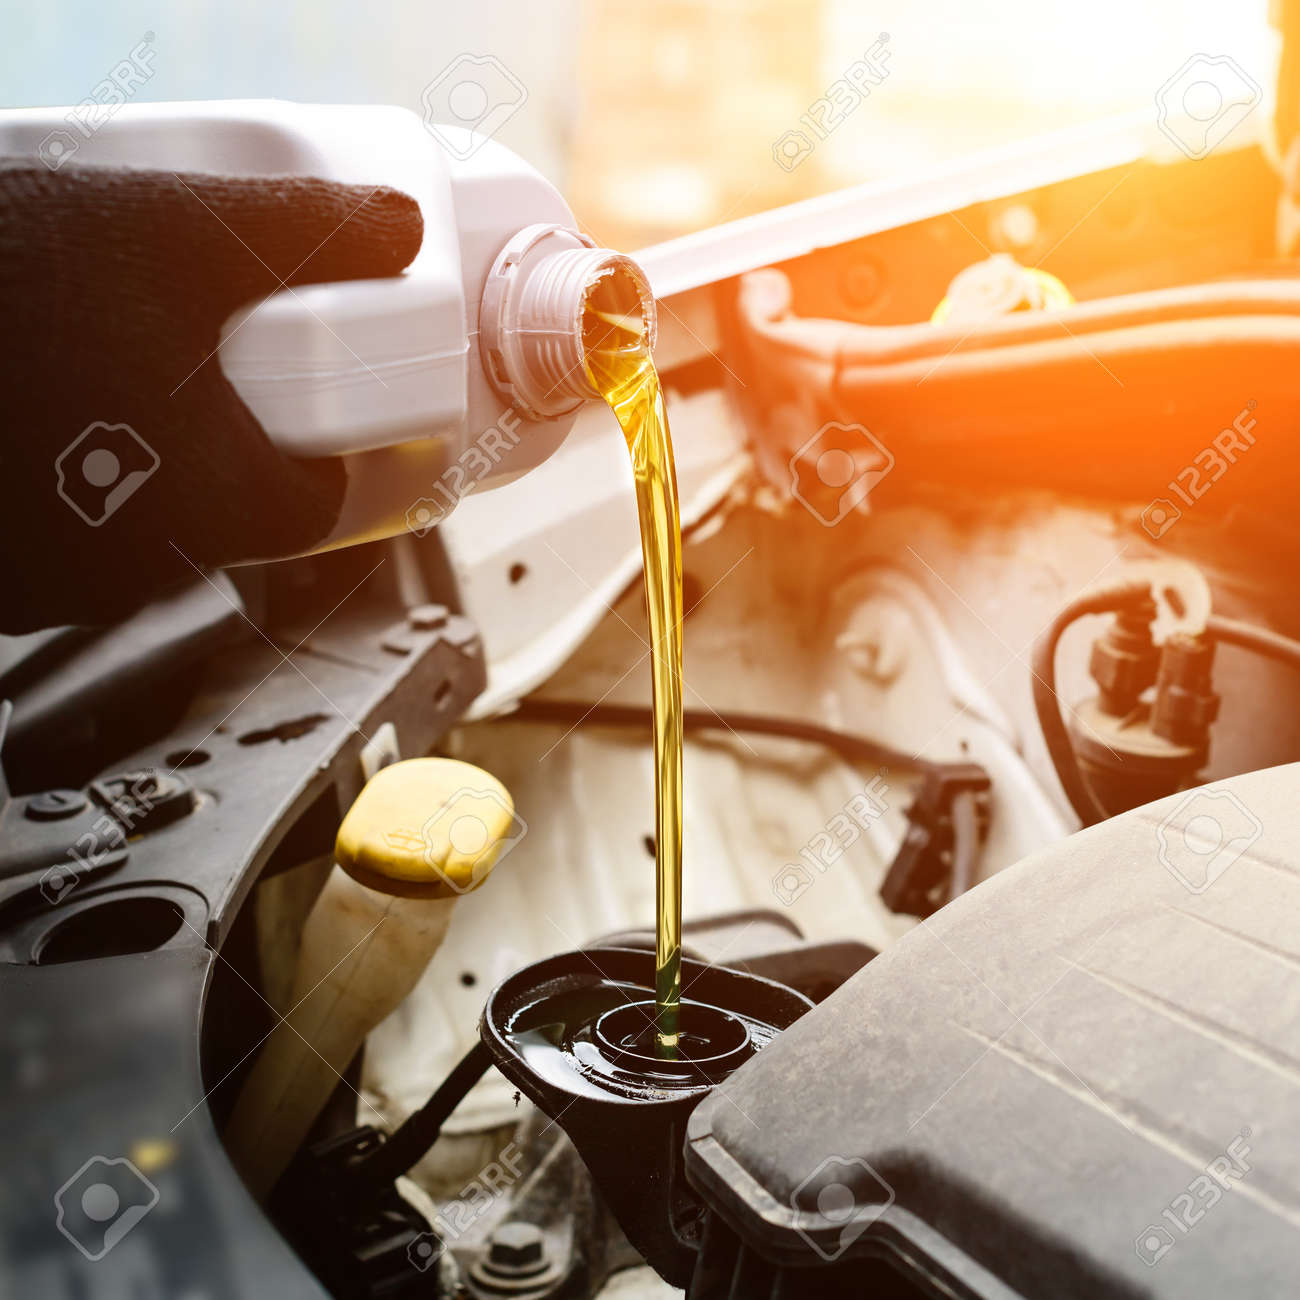 Fresh oil being poured during an oil change to car engine in ray - 105053884